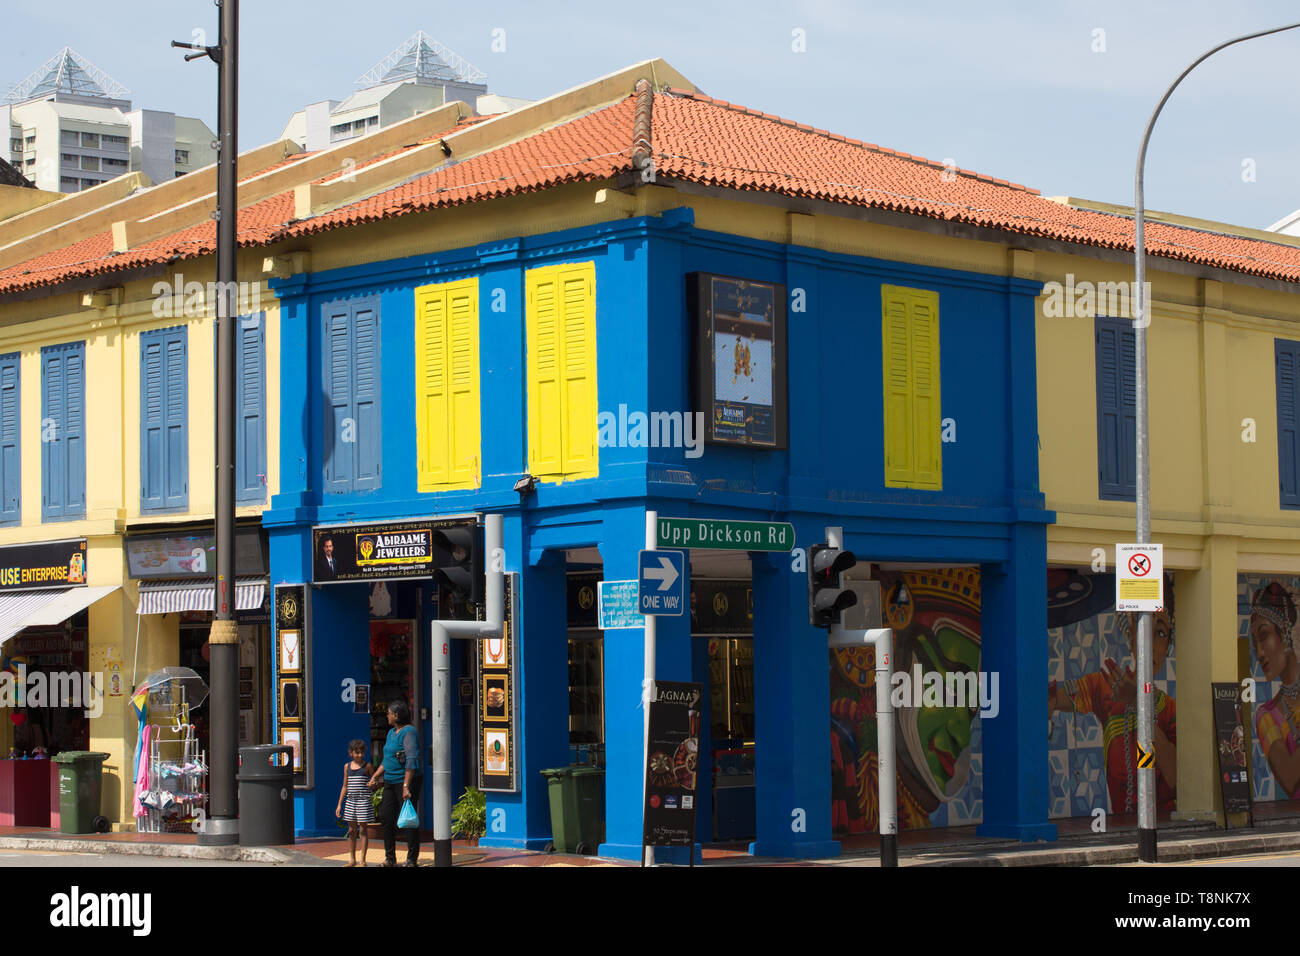 A shophouse painted in blue and wooden windows in yellow at Little India, Singapore. - Stock Image